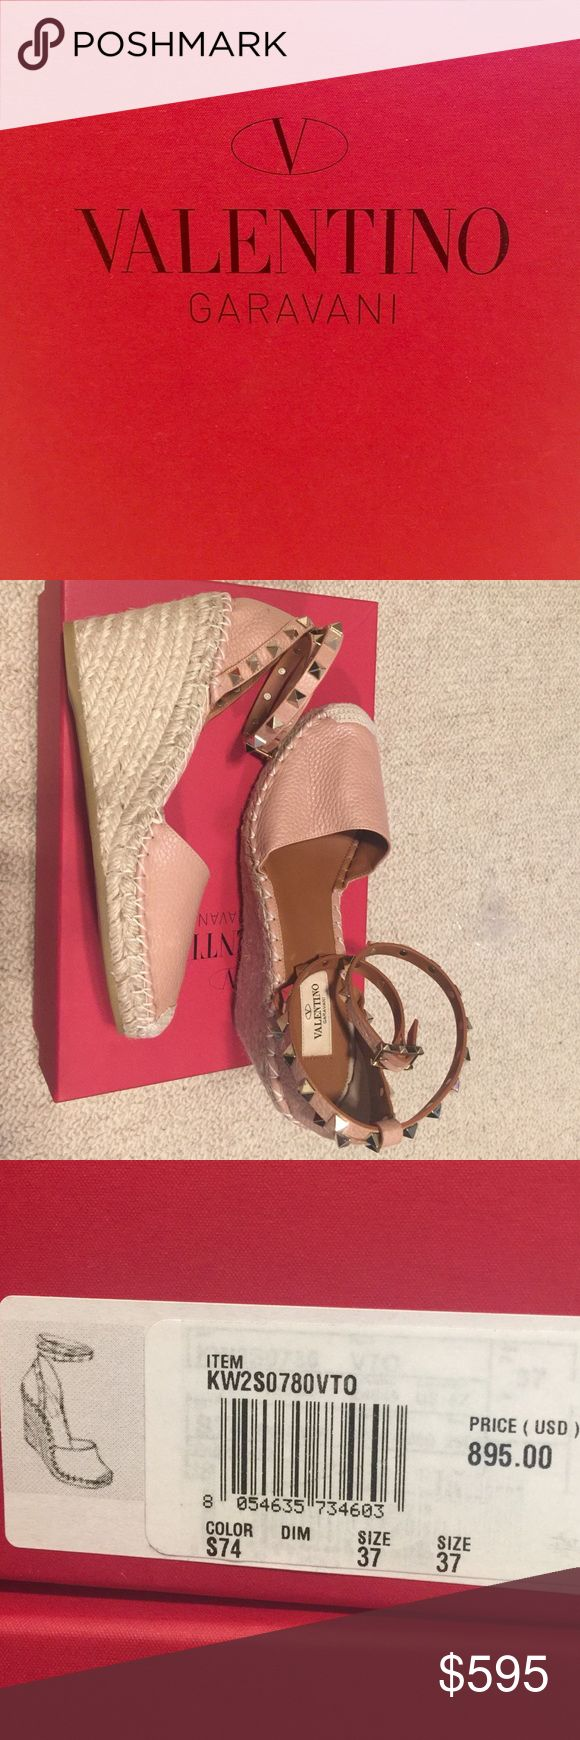 Valentino Rockstud Espadrille Wedge $595 (org$895) Beautiful Valentino wedges. Never warn. Color-nude, heel height is 3 inches. New with original box. Valentino Shoes Wedges